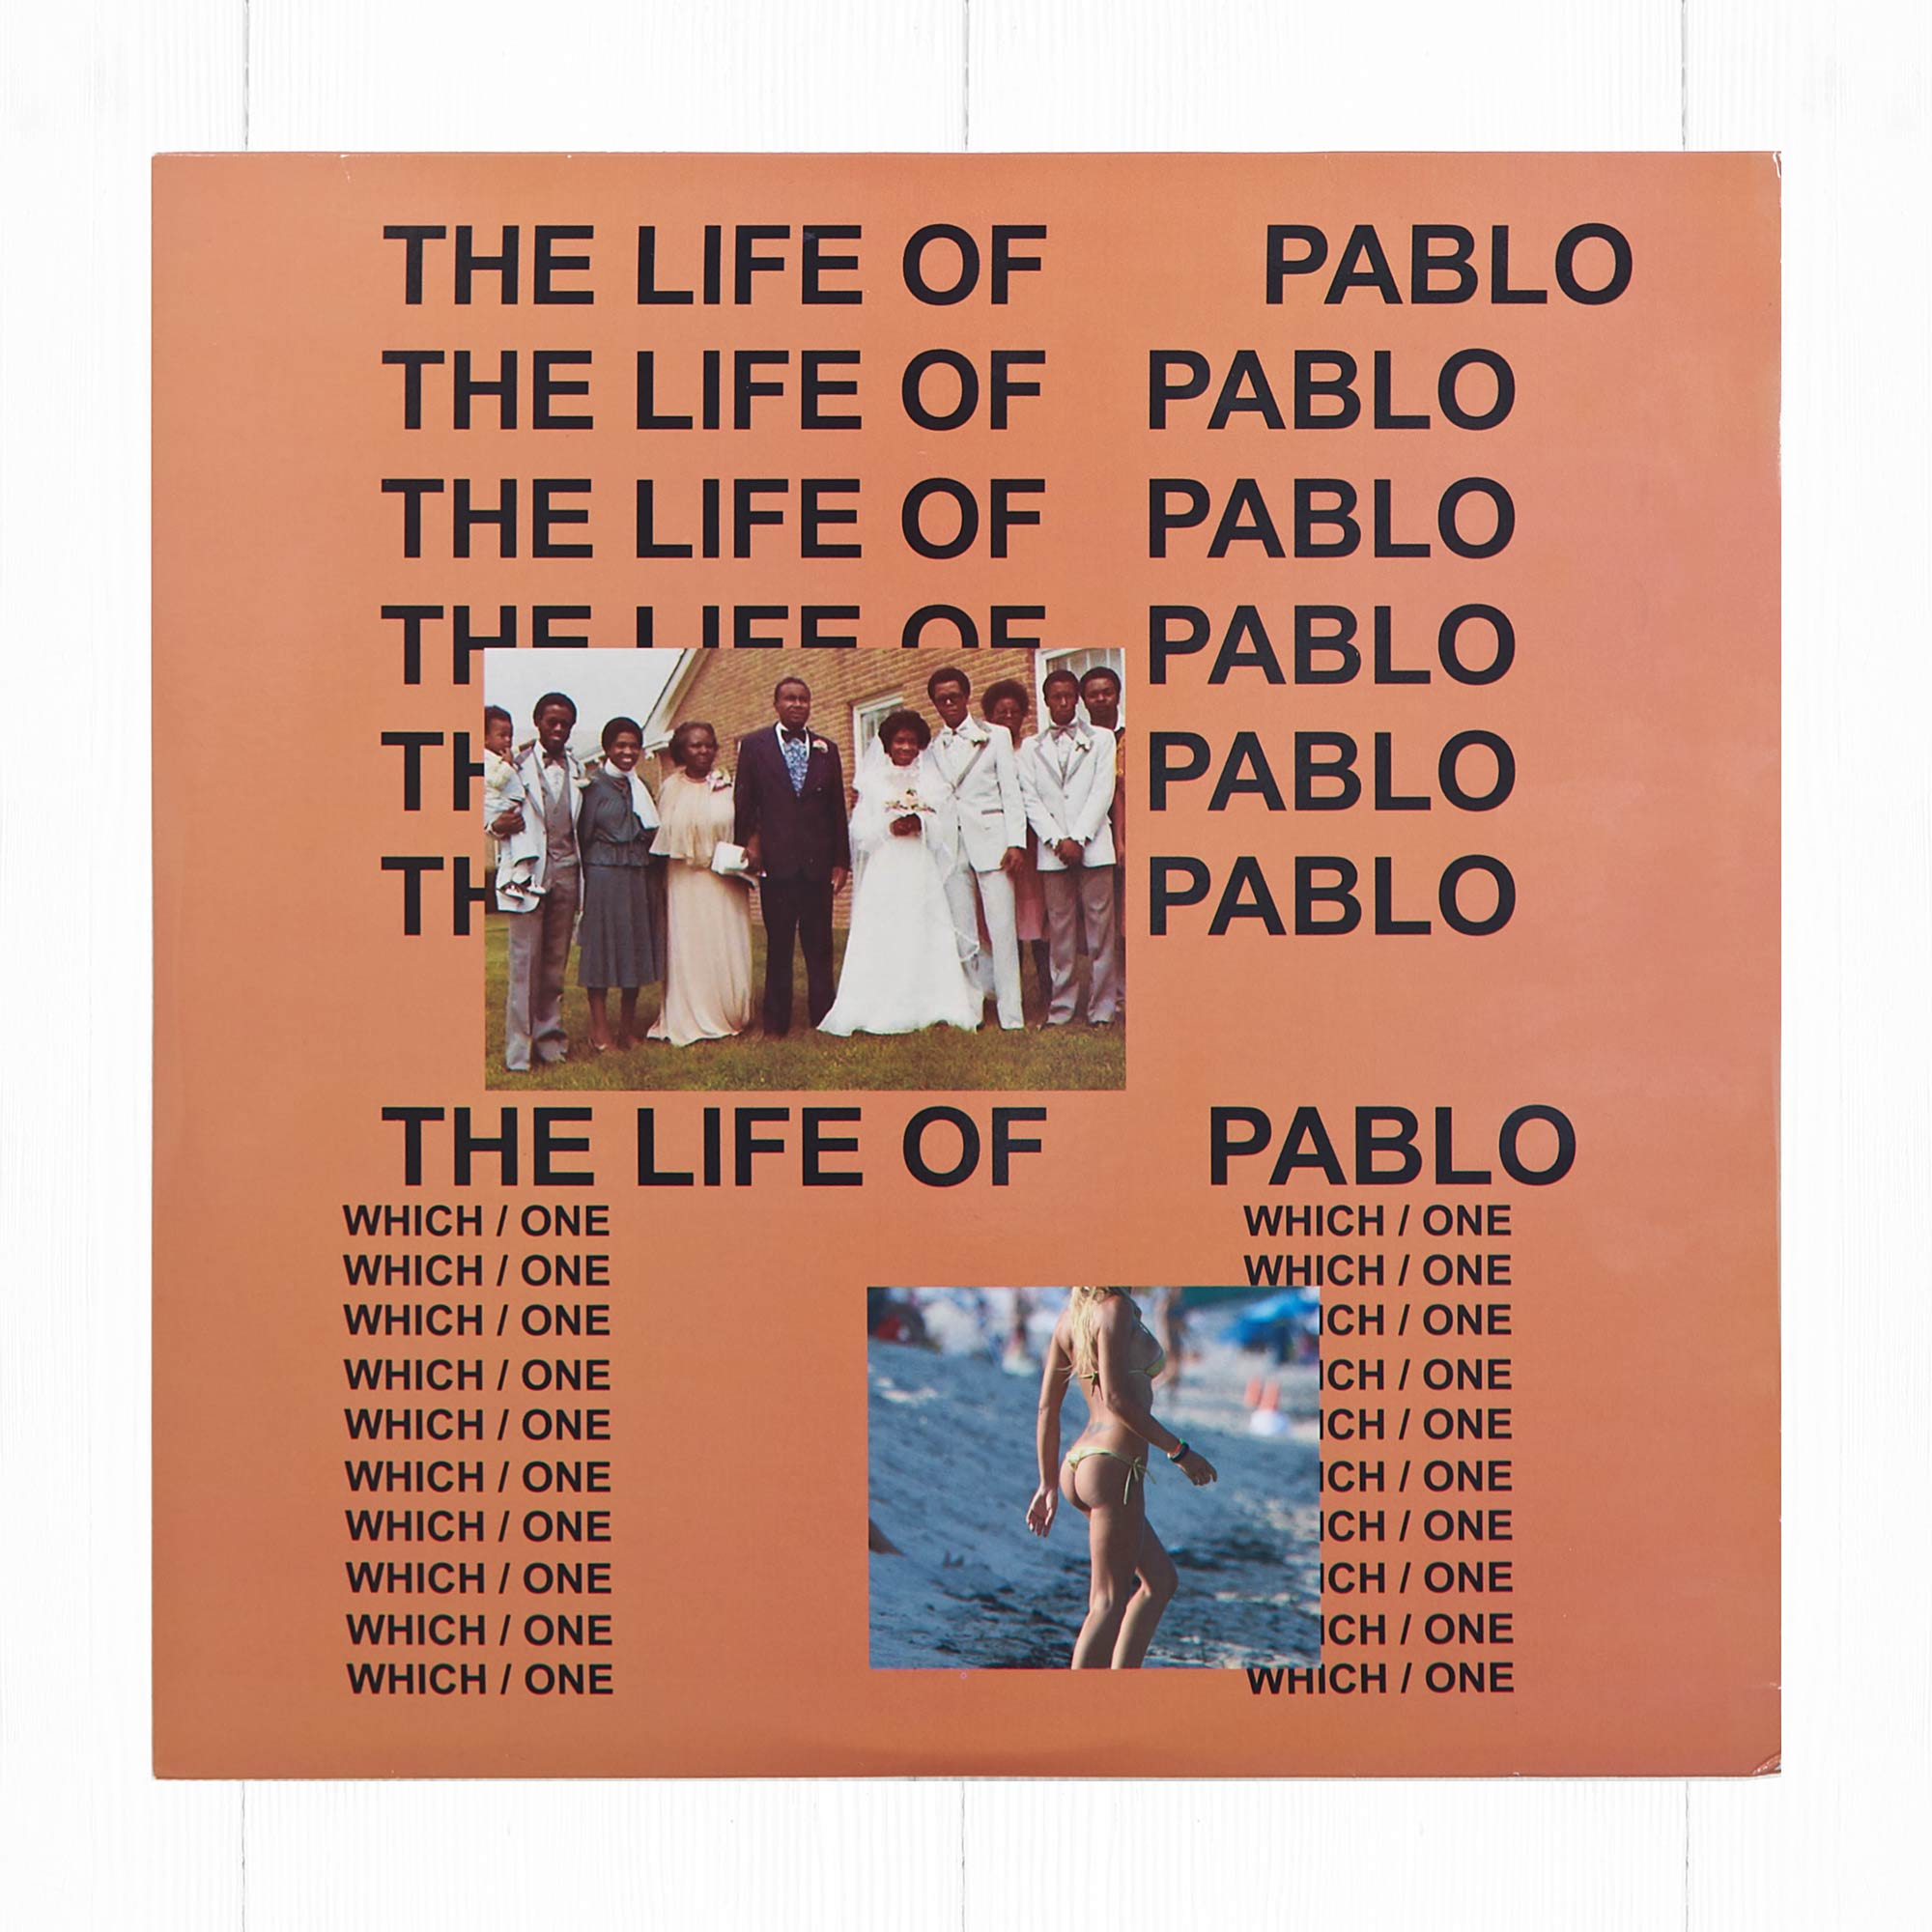 KANYE WEST - THE LIFE OF PABLO (R&B. TRAP)